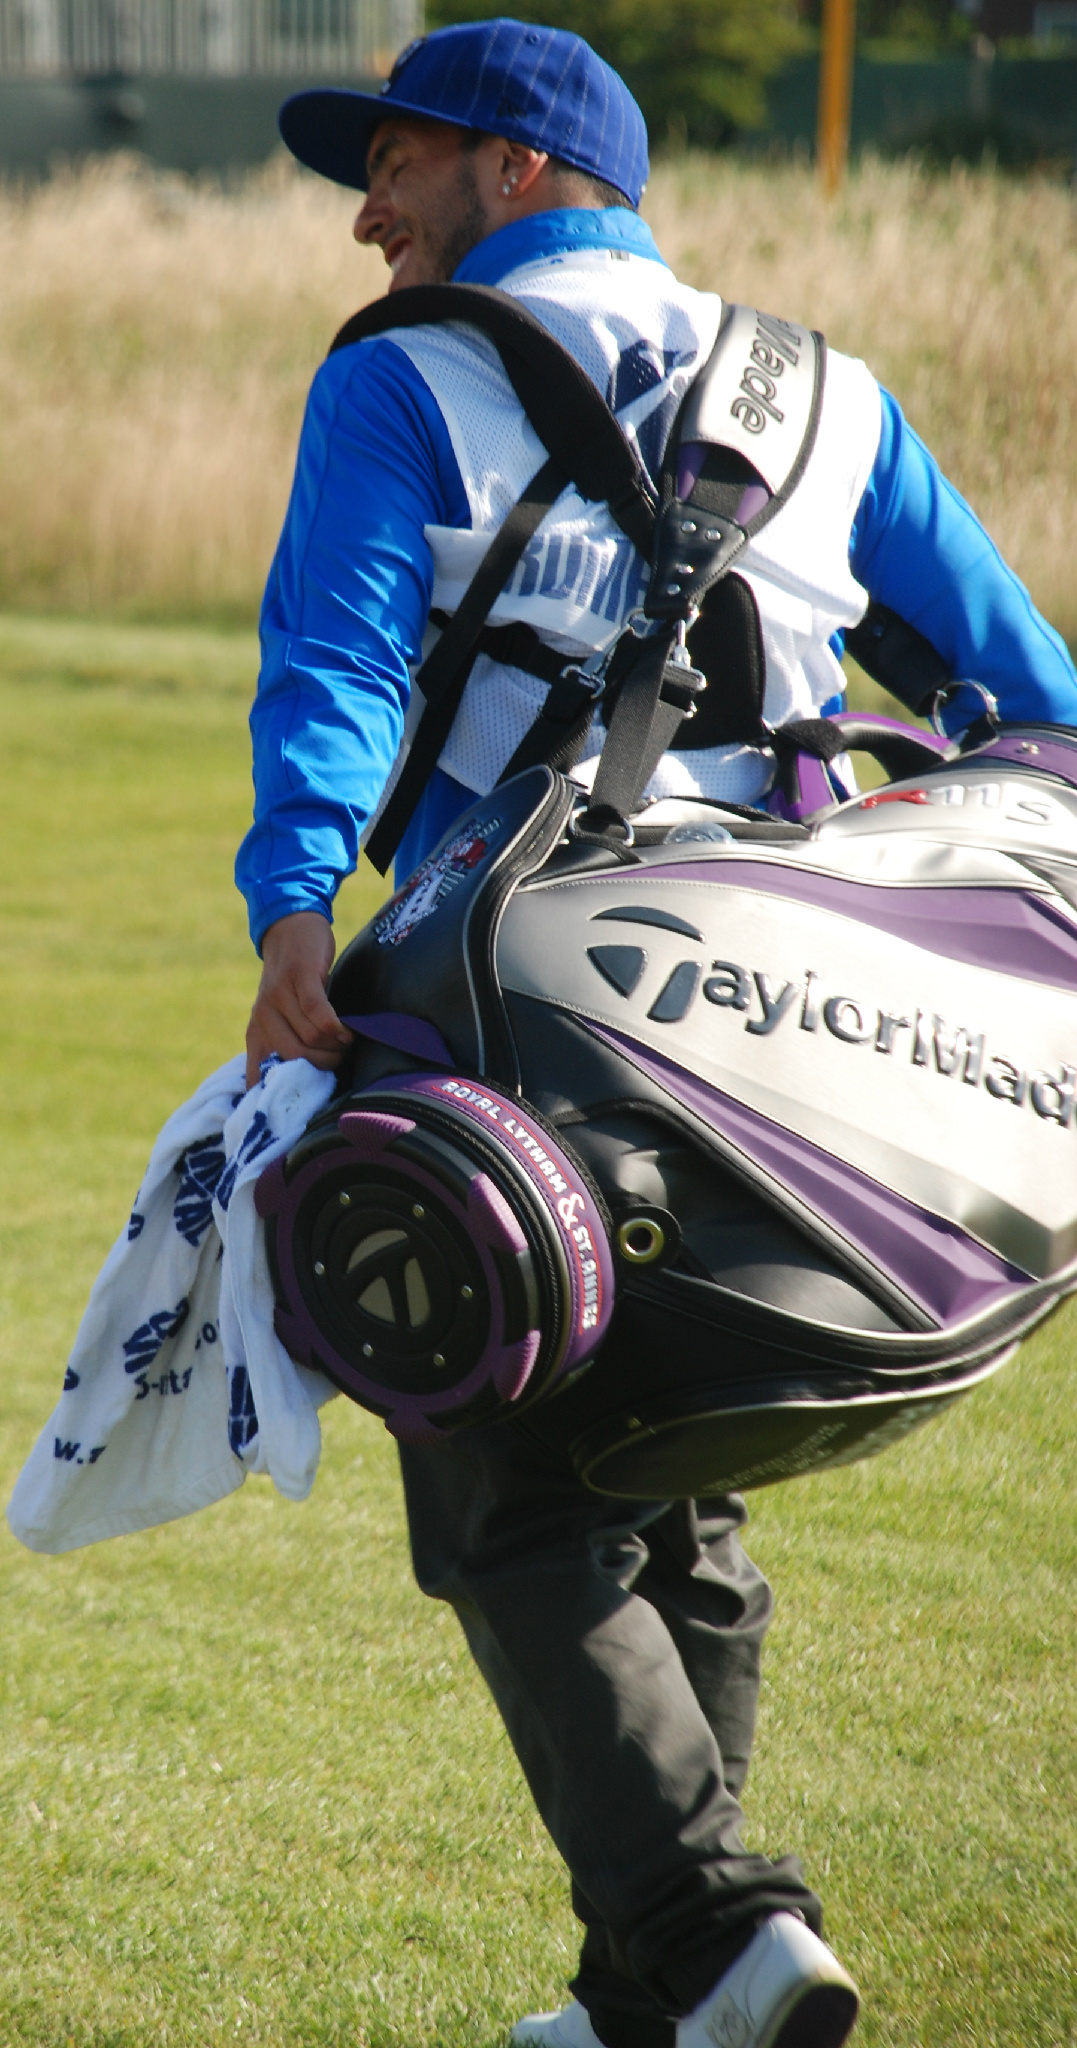 The rumours are true! Carlos Tevez is caddying for Andres Romero. #TheOpen http://t.co/VDLFZnmL